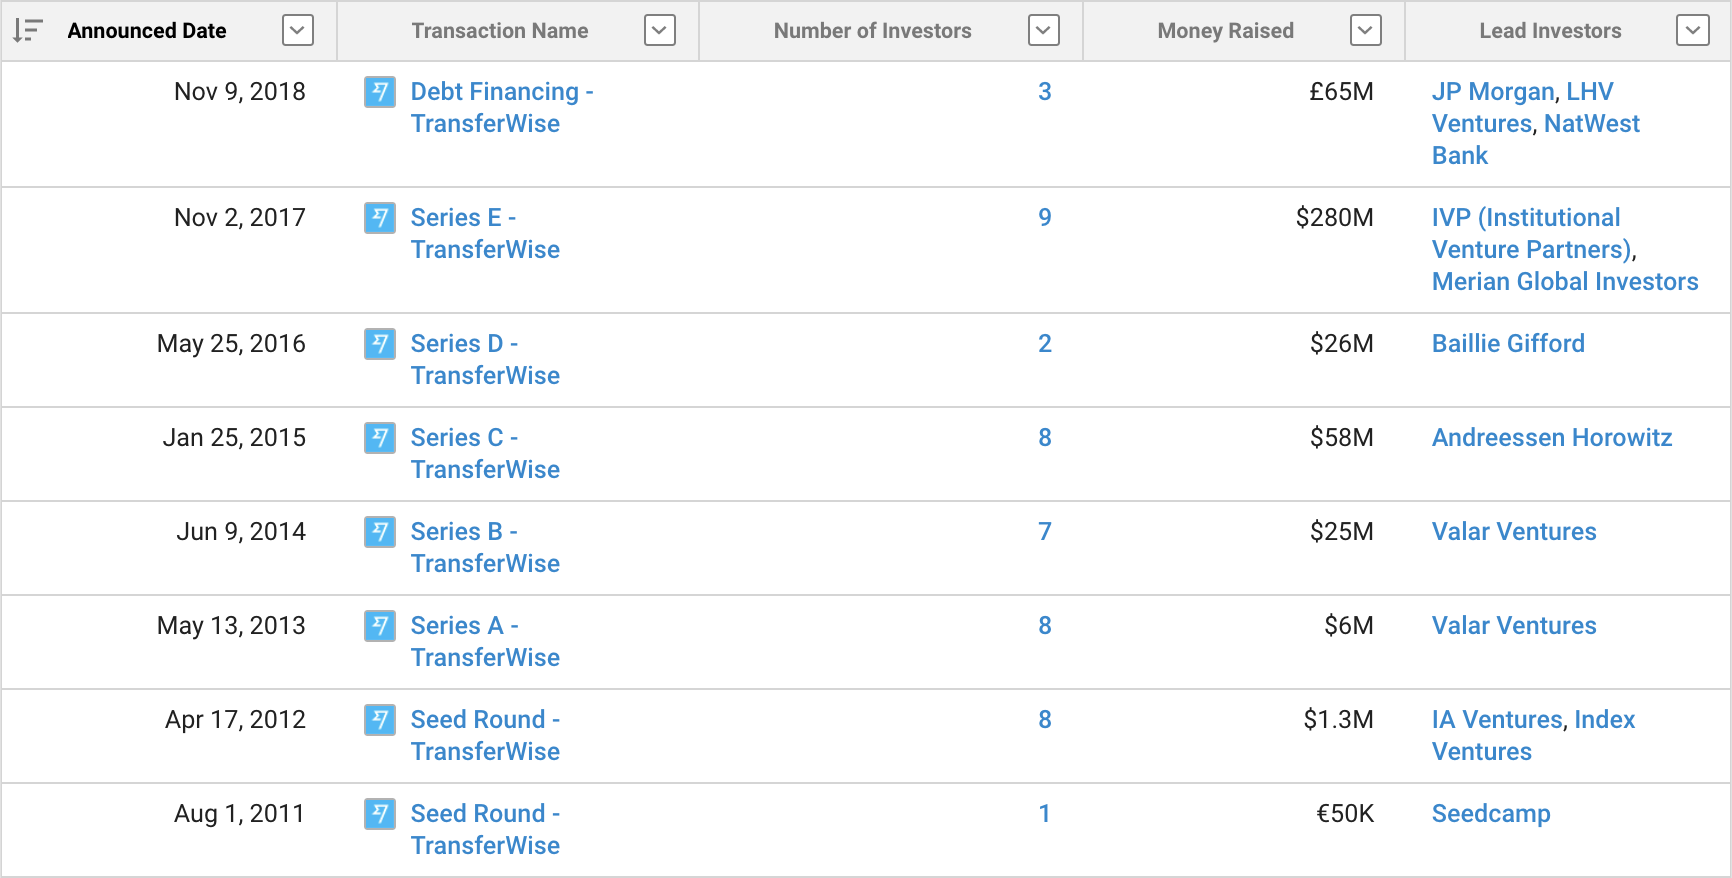 Screenshot of a data table sourced from Crunchbase